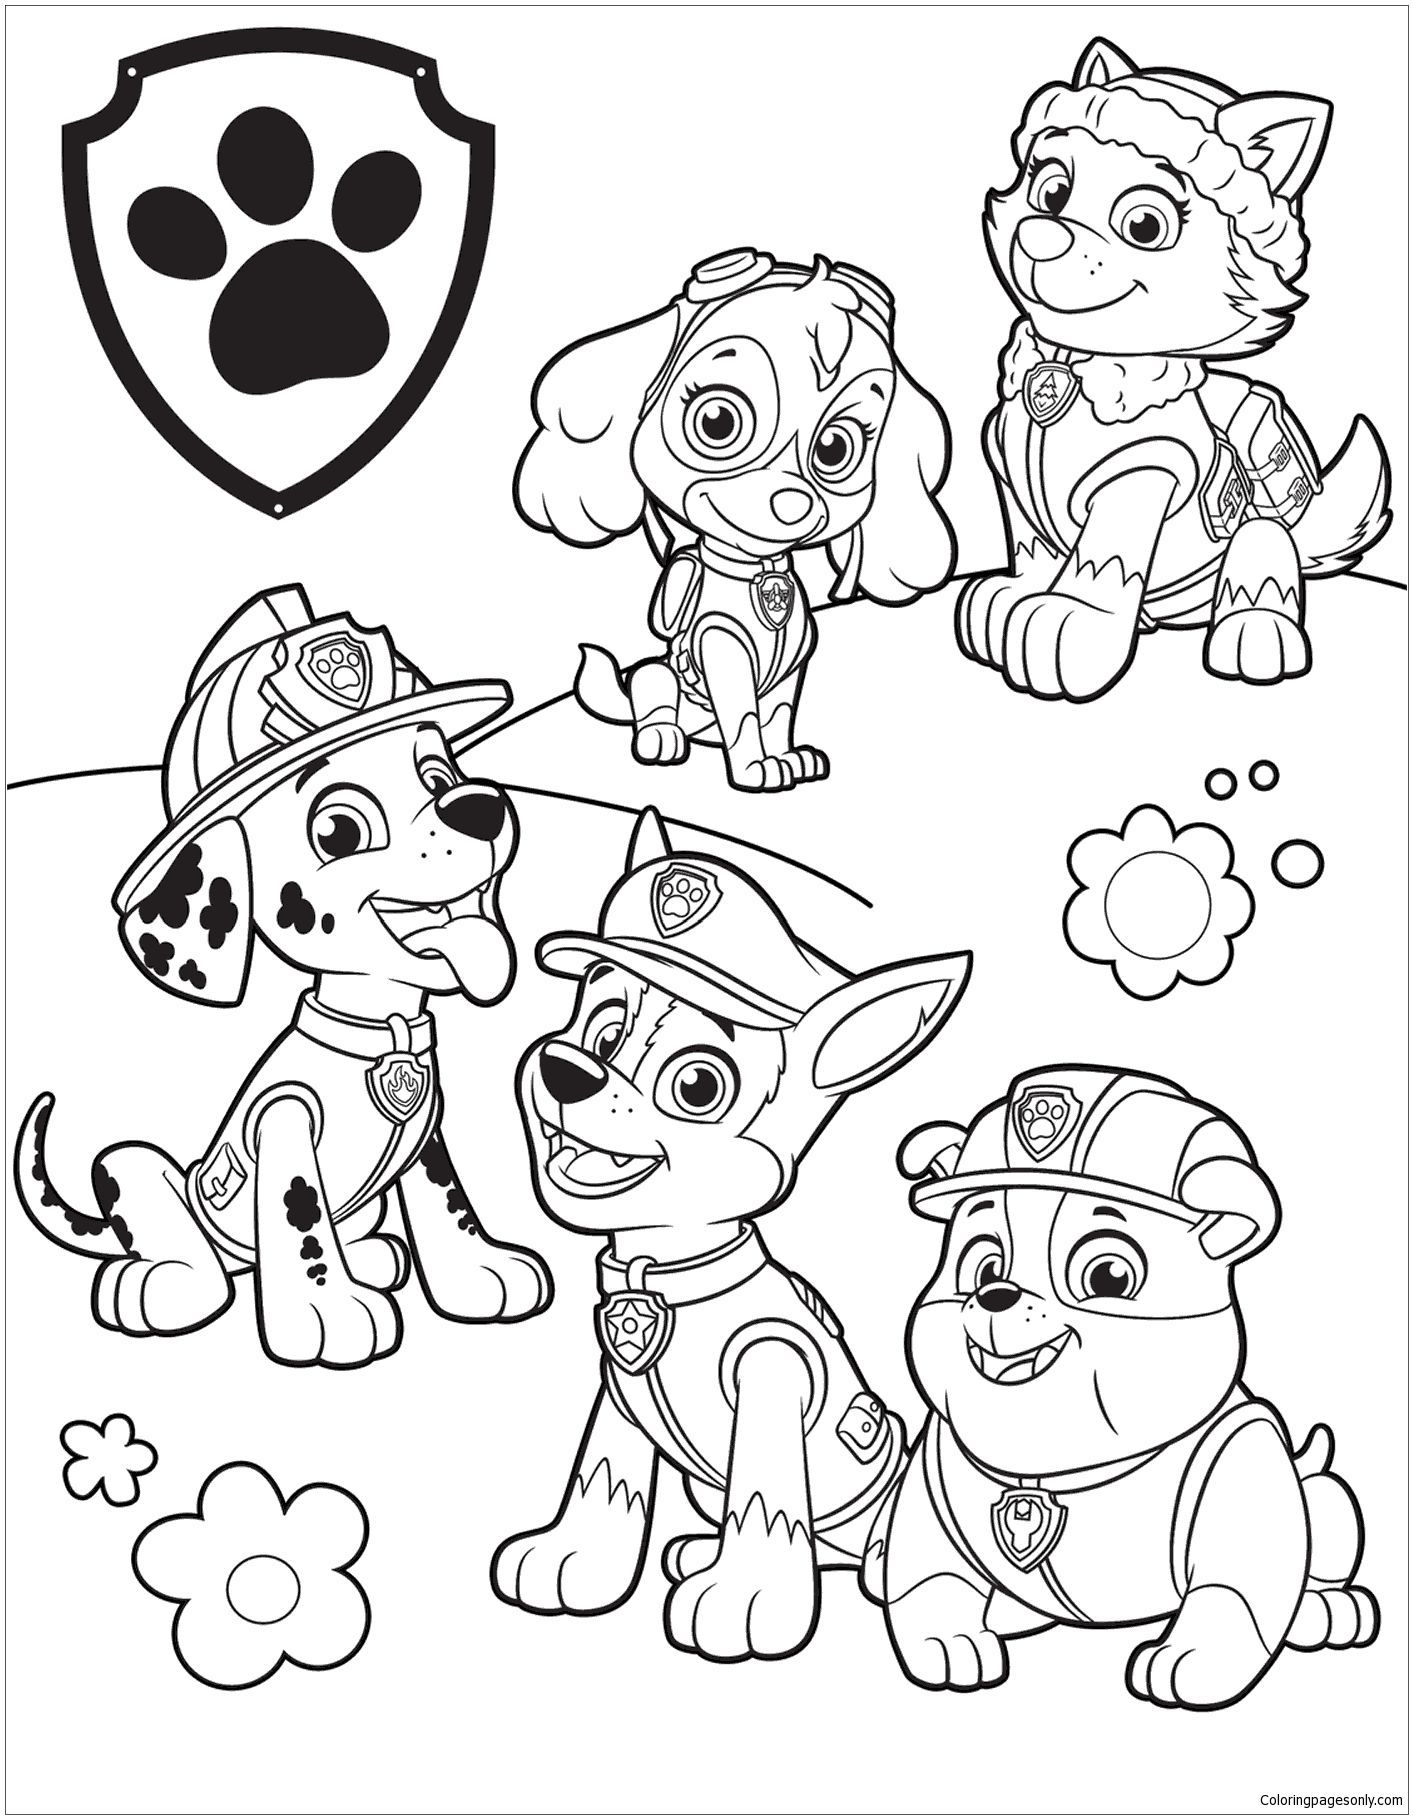 merpups coloring pages - photo#16